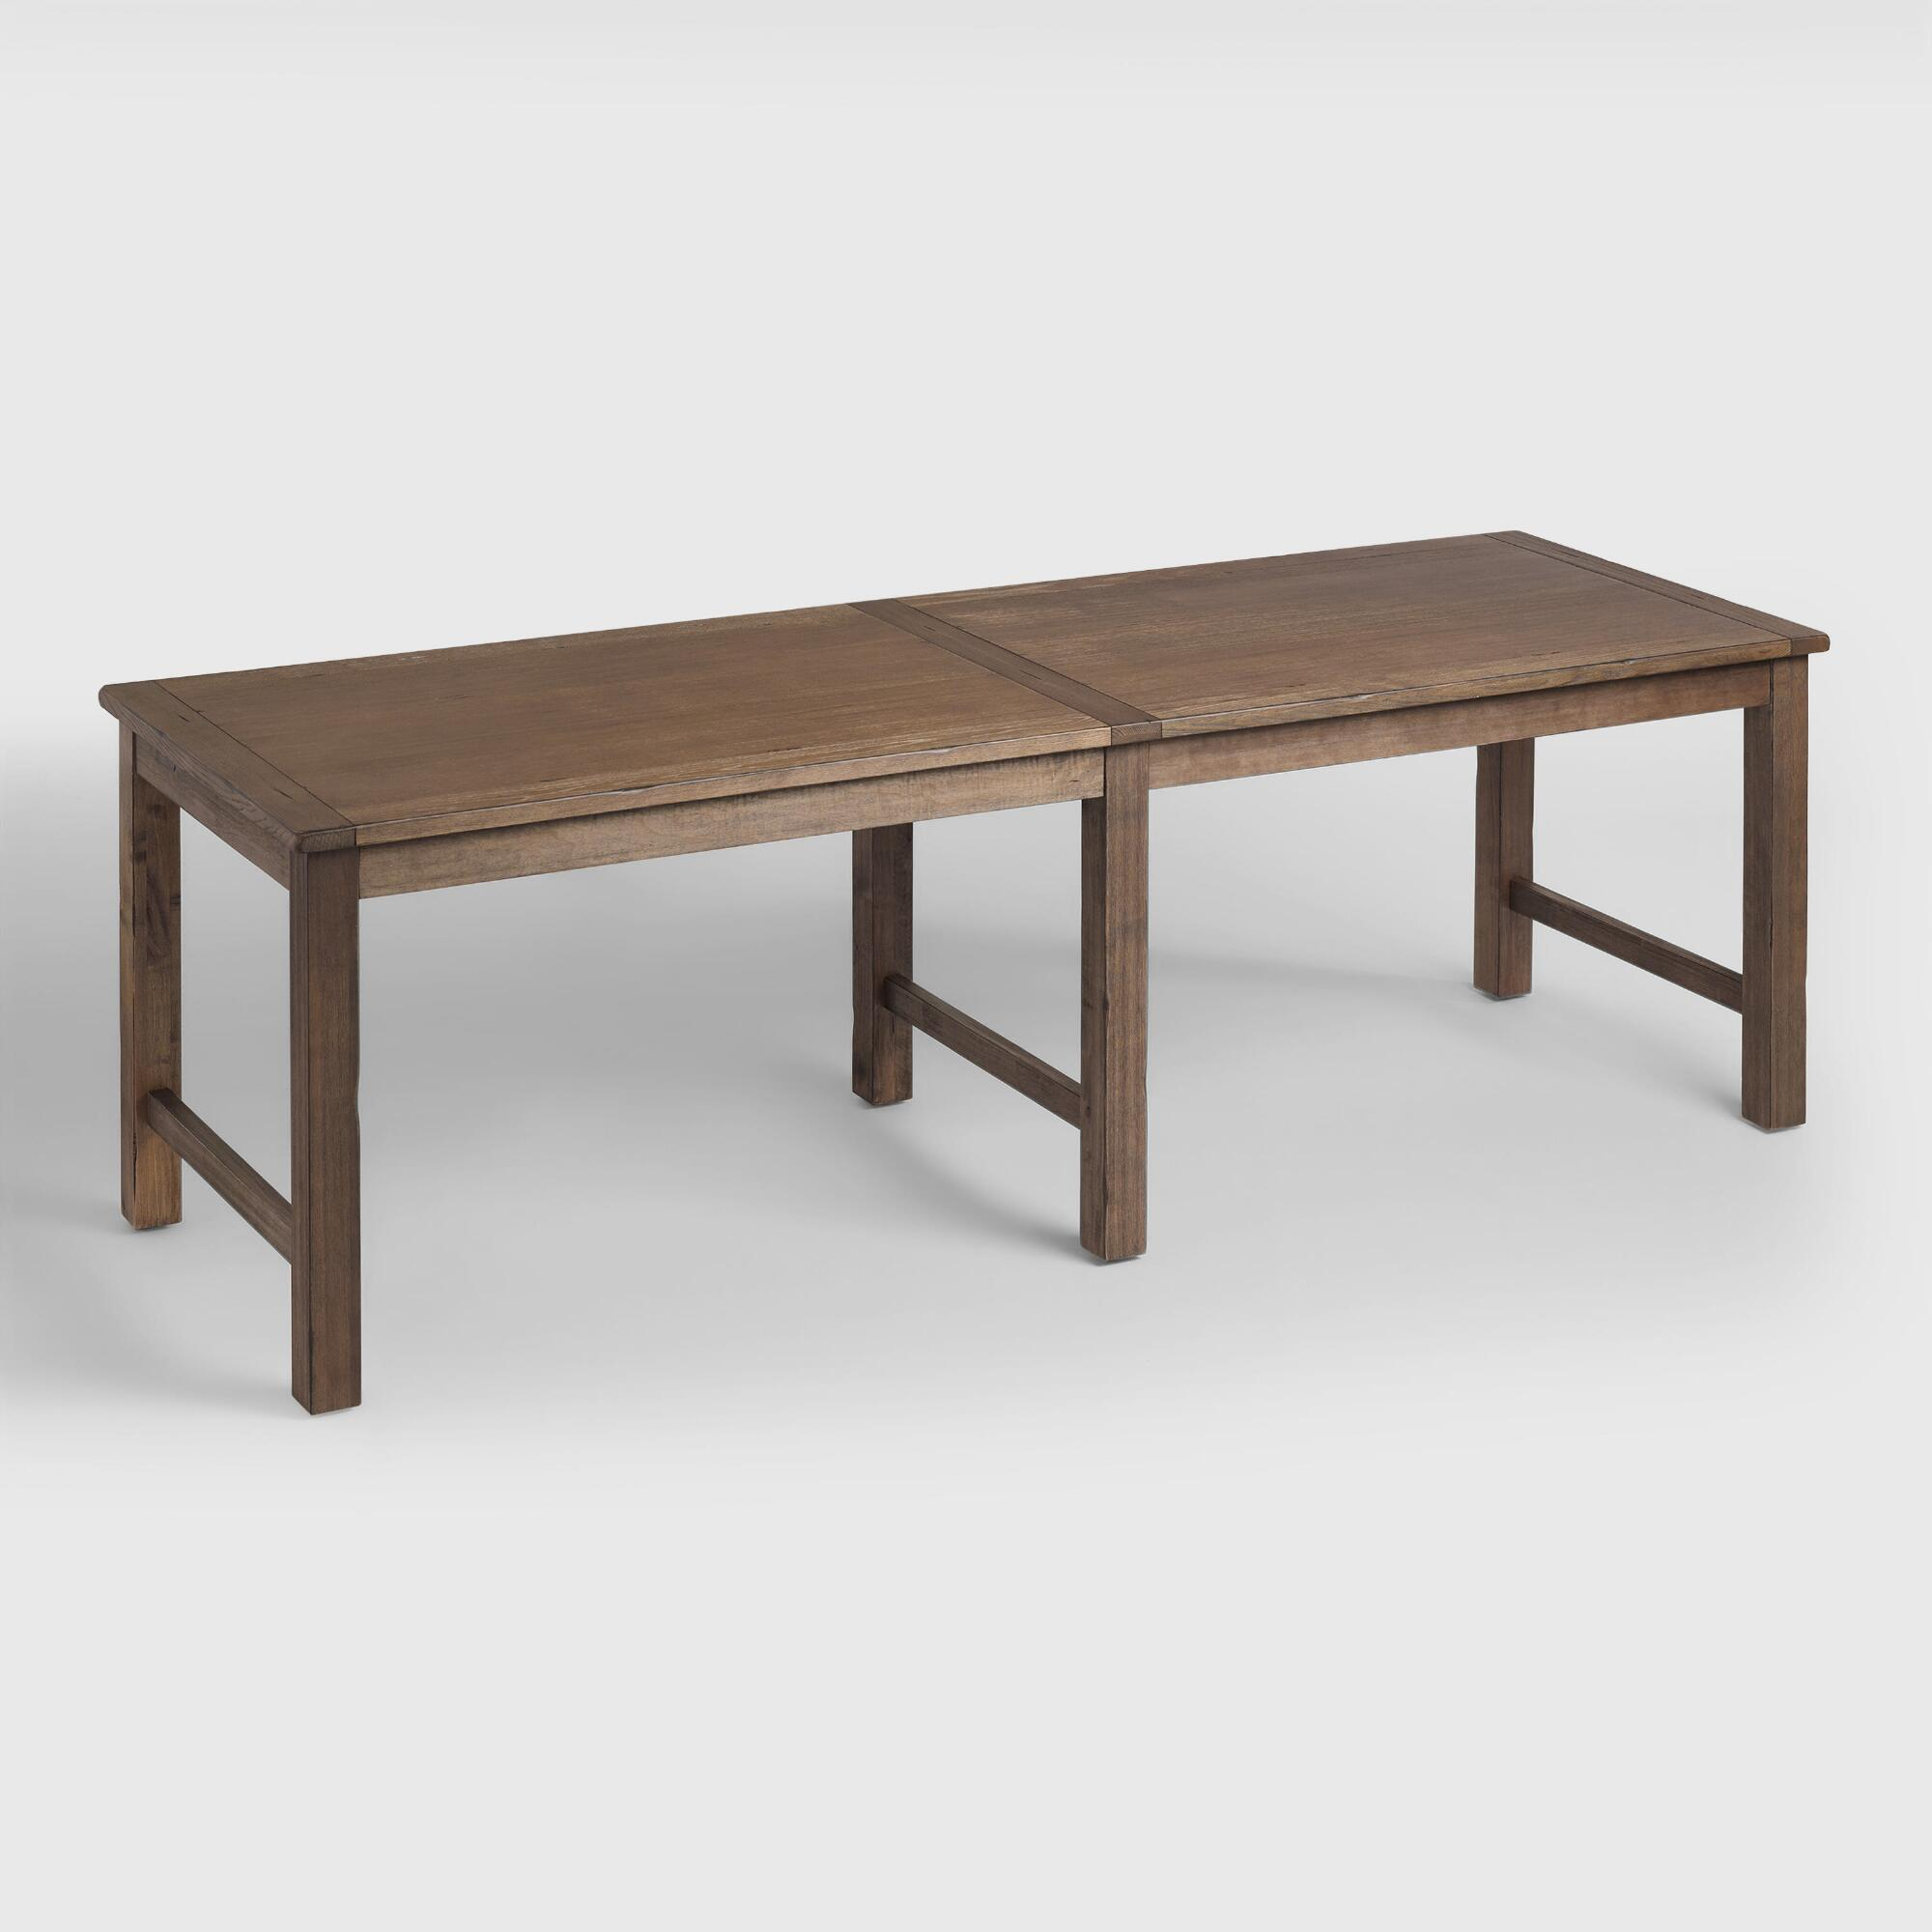 Distressed brown wood gulianna extra long dining table for Long dining room table